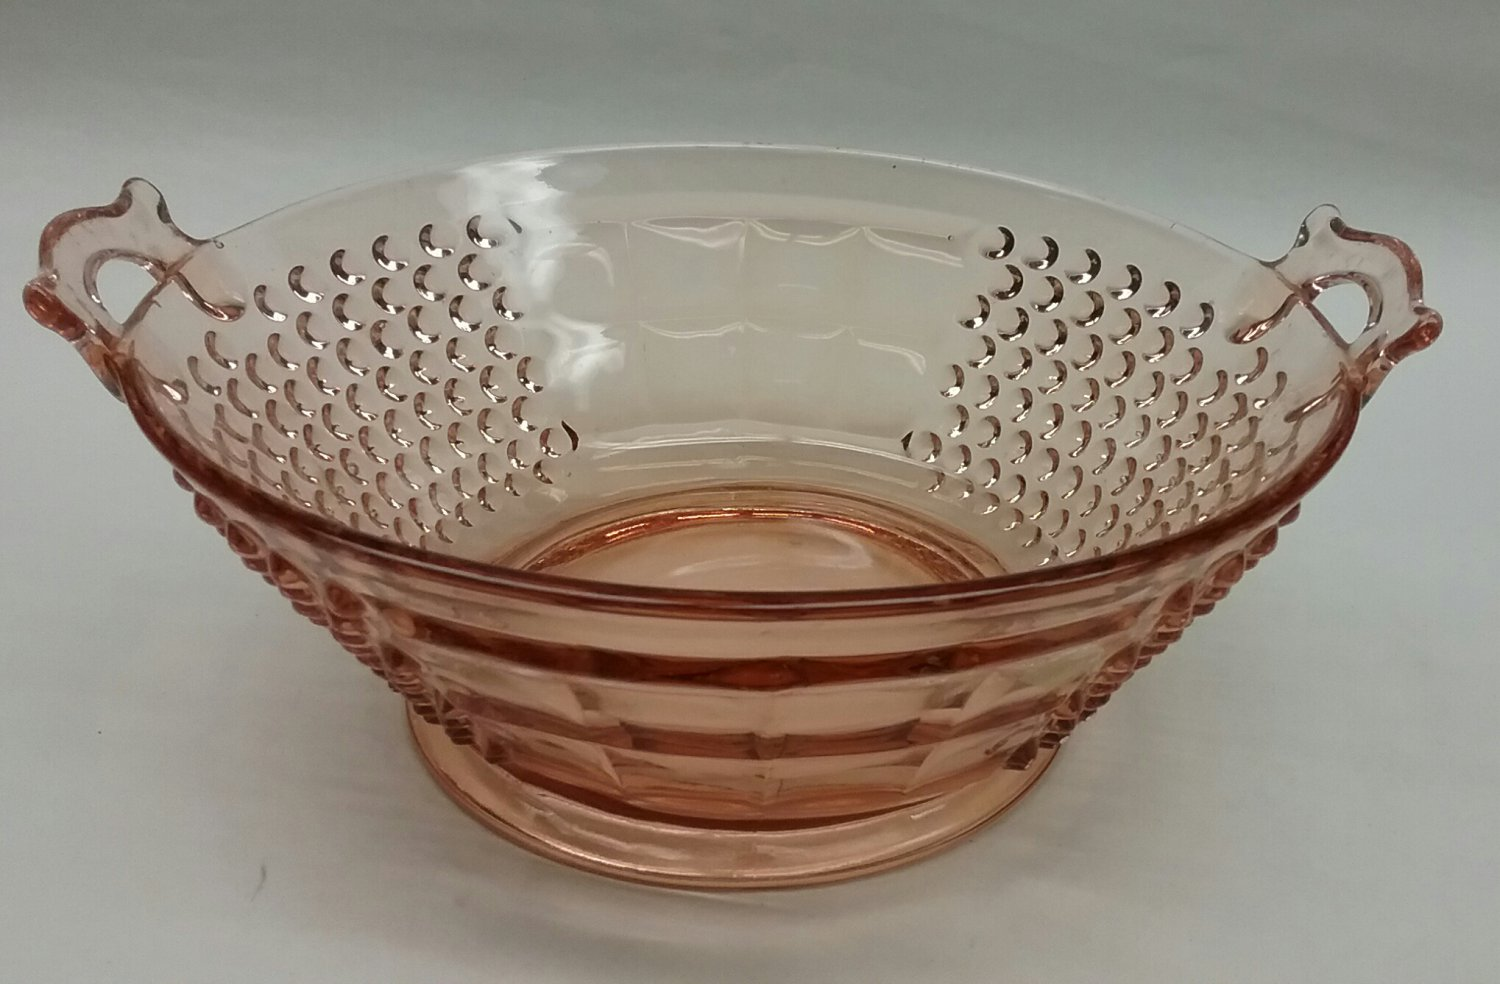 Pink depression glass handled bowl